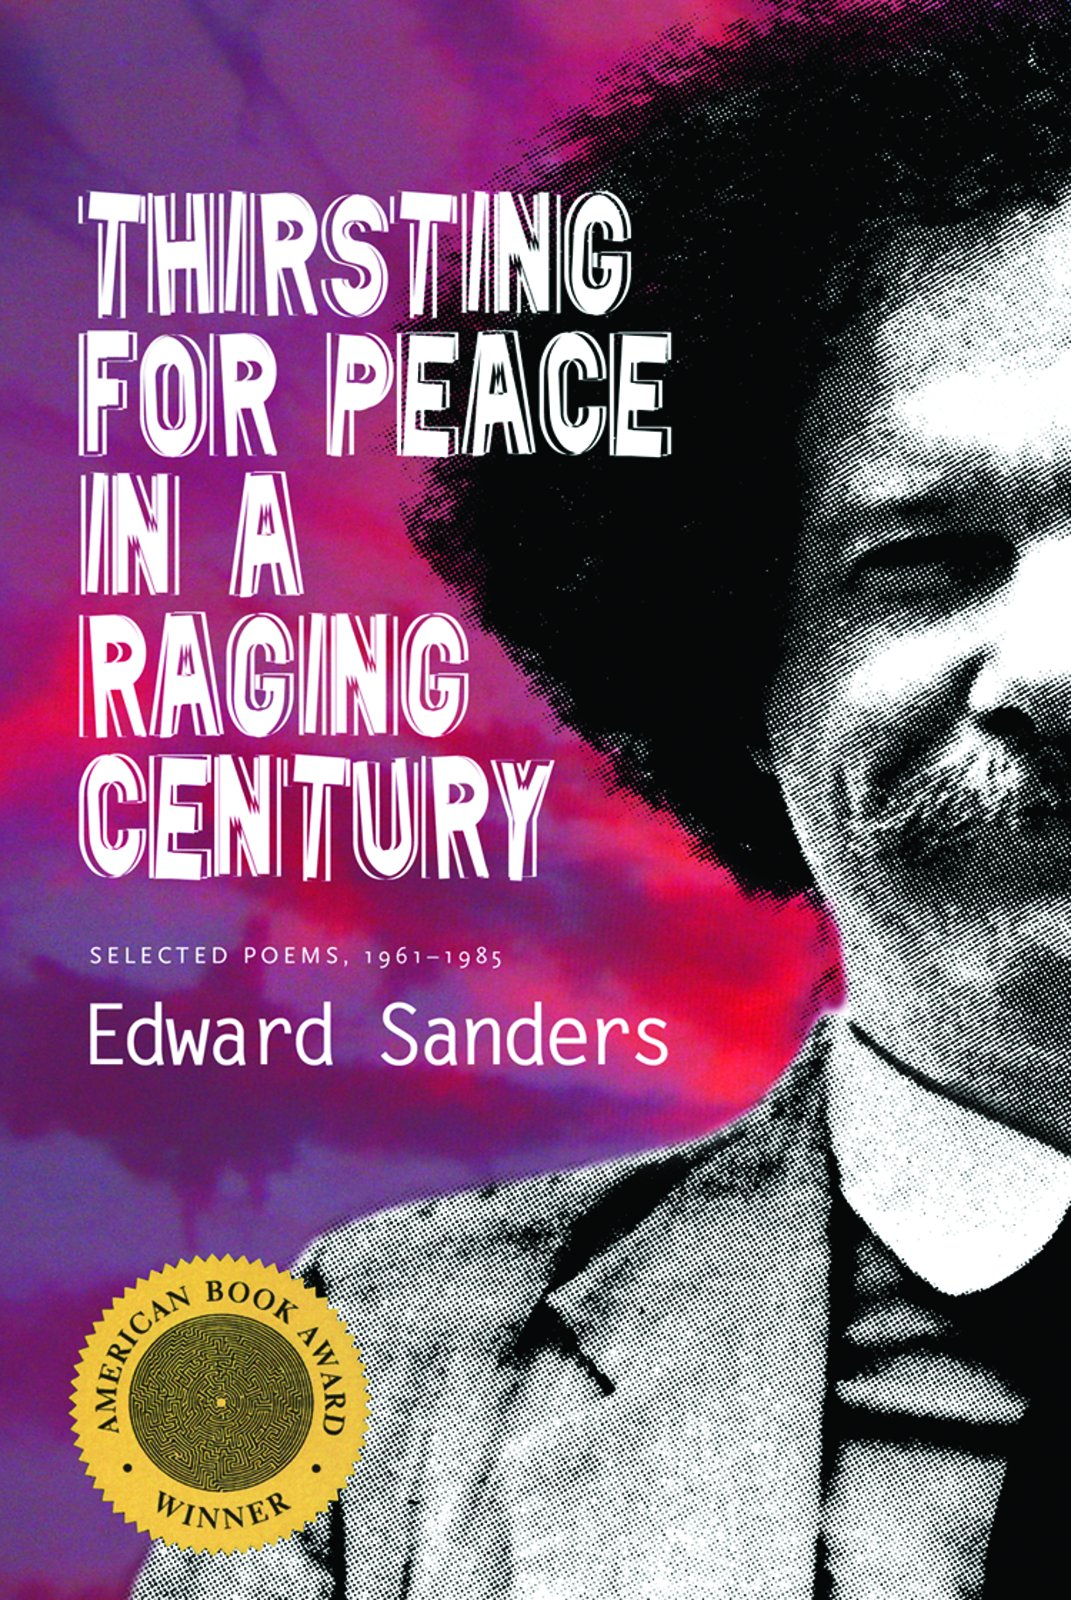 Thirsting for Peace in a Raging Century: Selected Poems 1961-1985 pdf